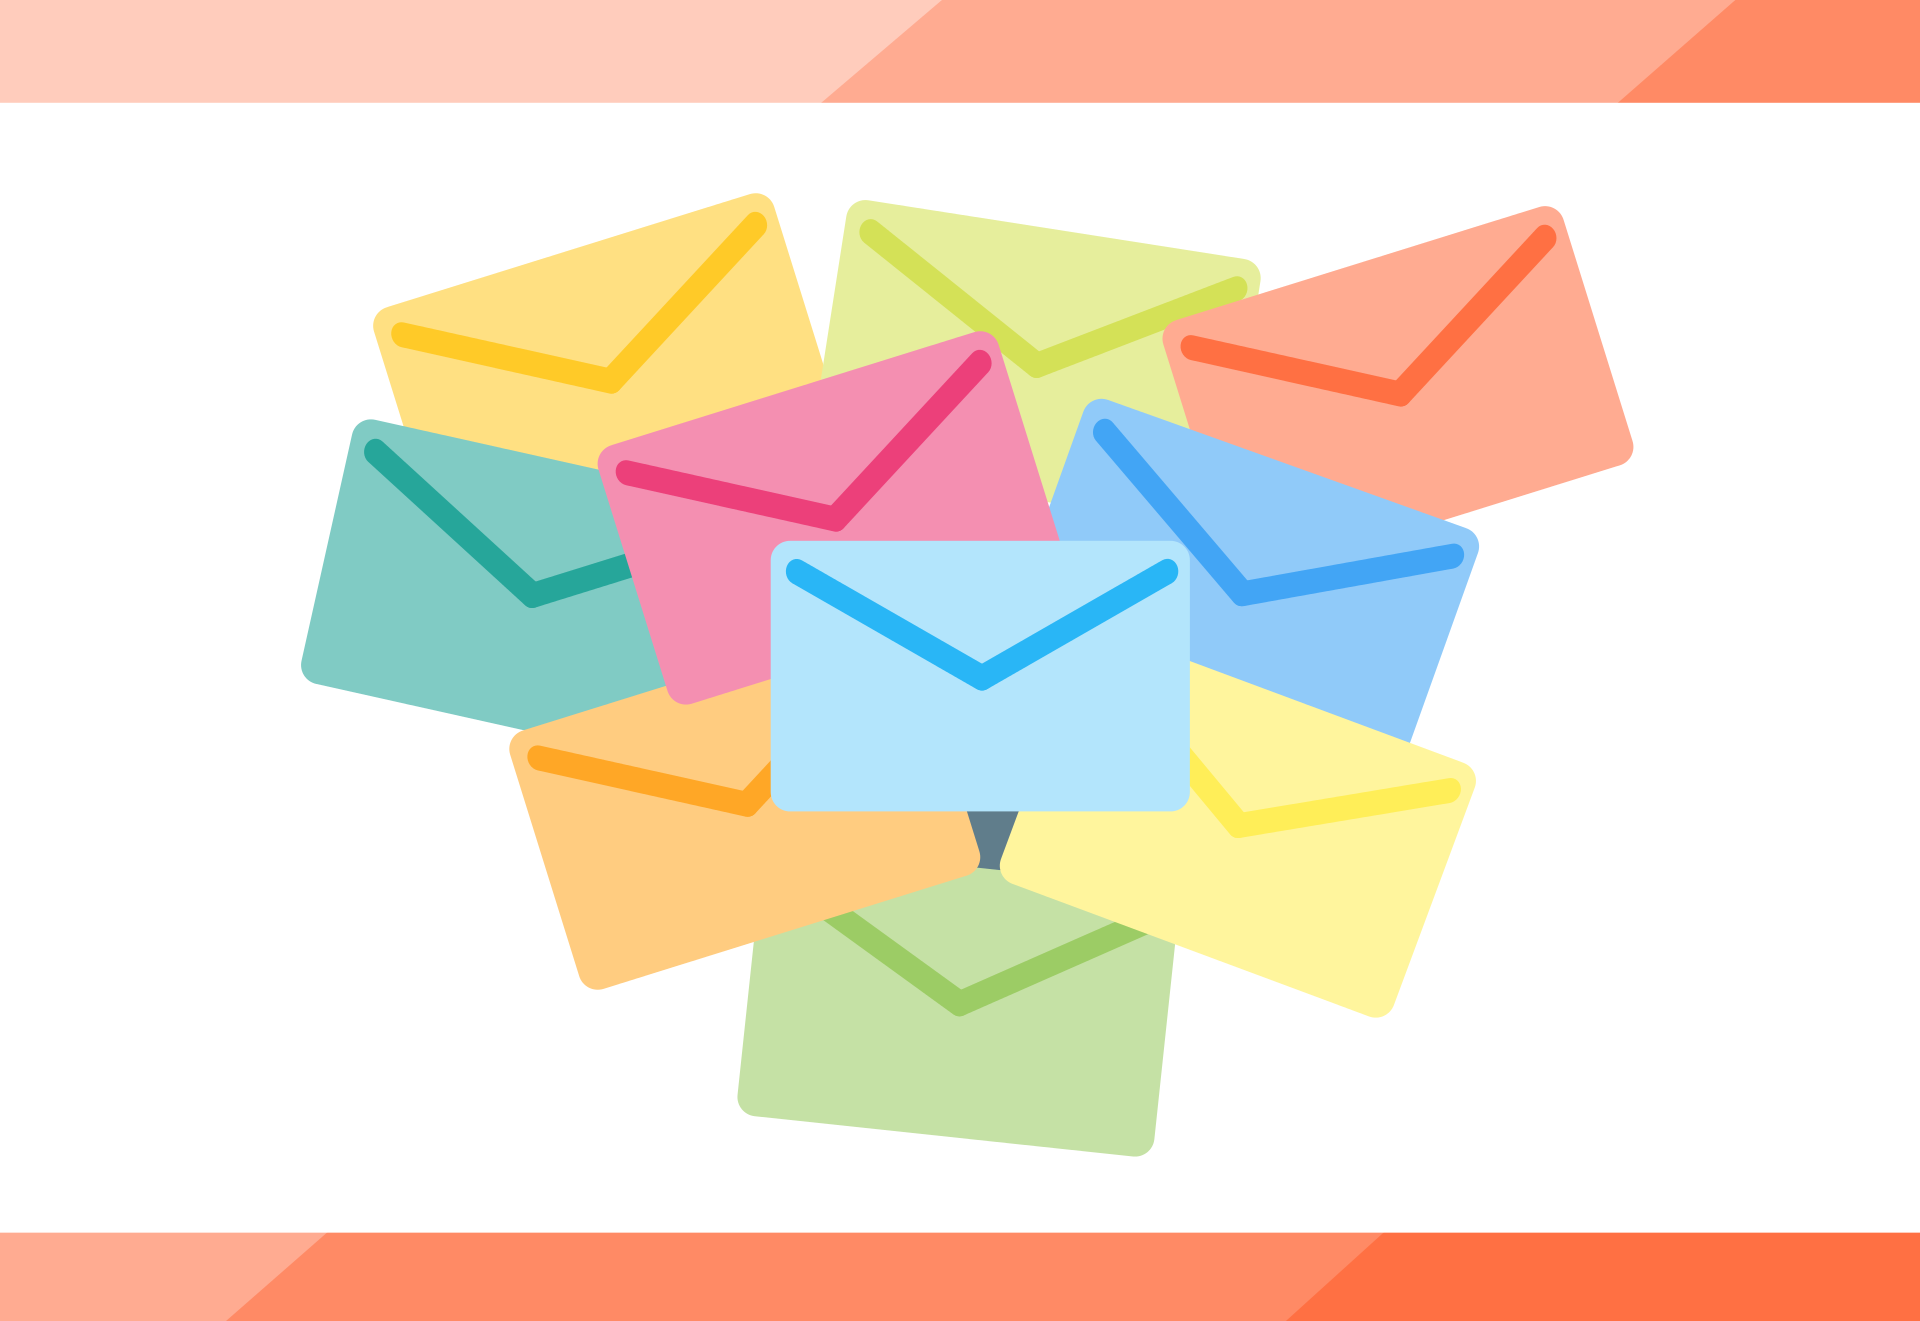 Popular Email Providers